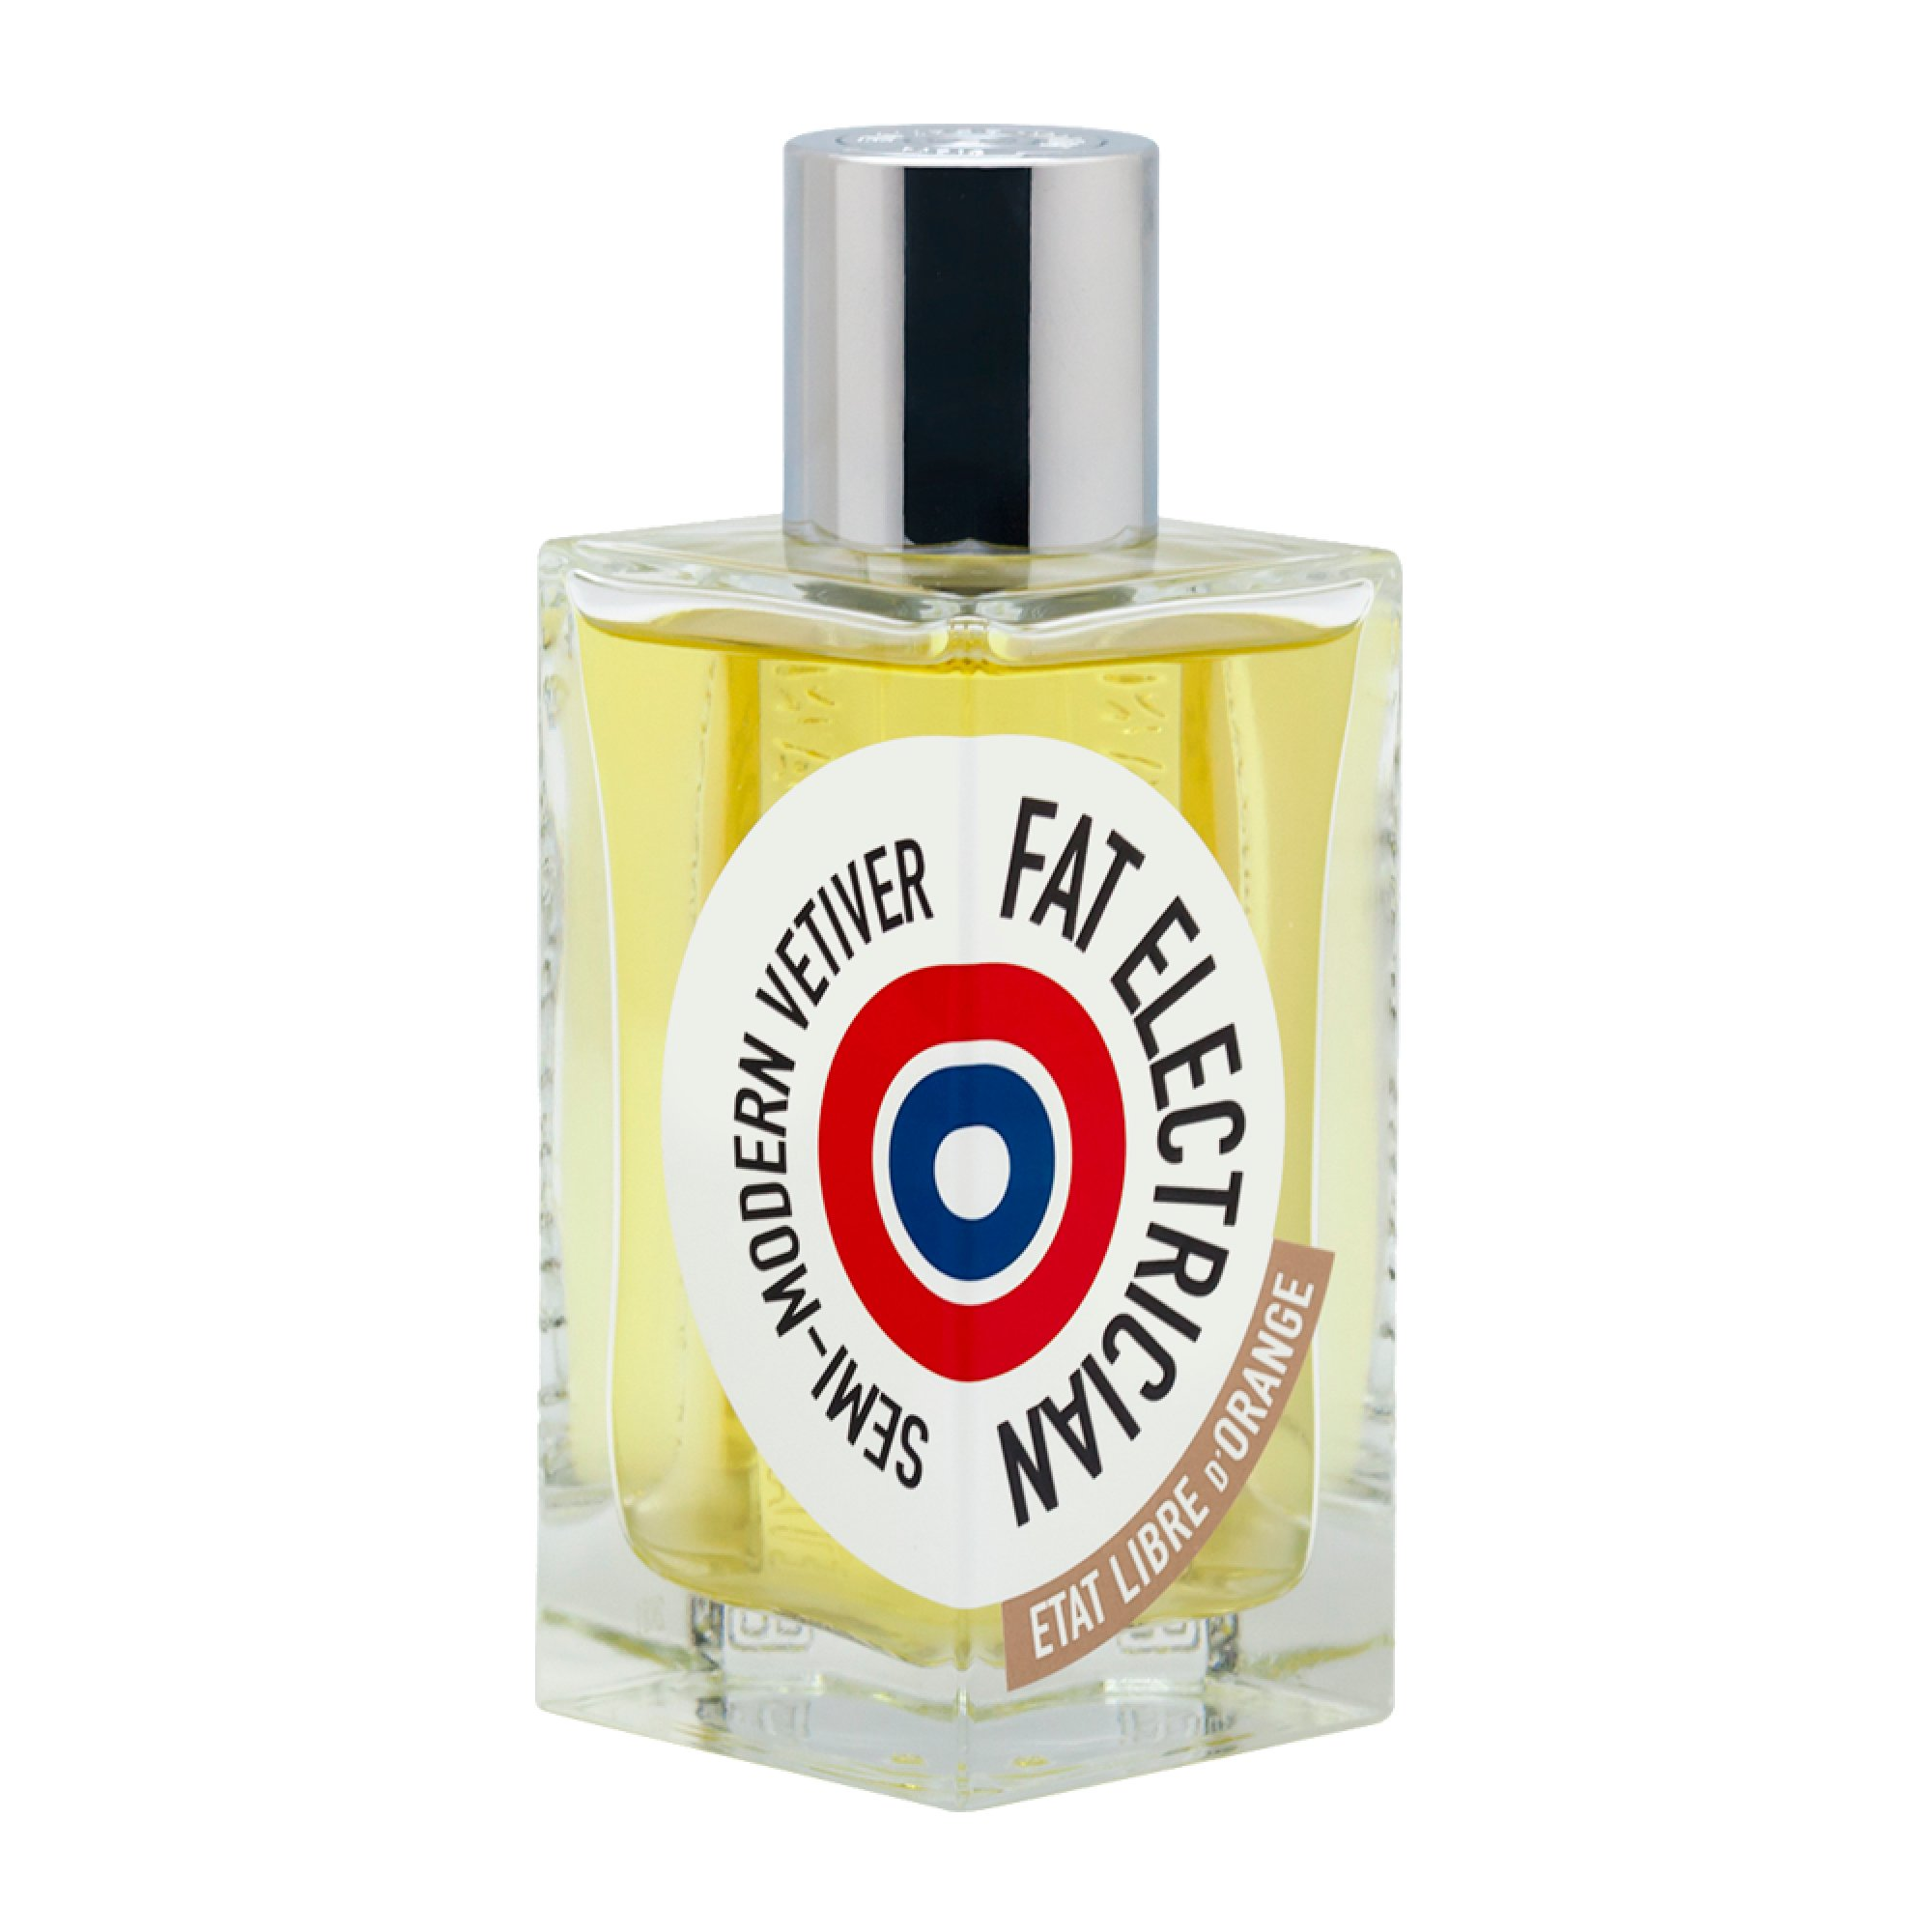 Etat Libre d'Orange Fat Electrician Eau de Parfum Spray, 3.38 fl. oz.